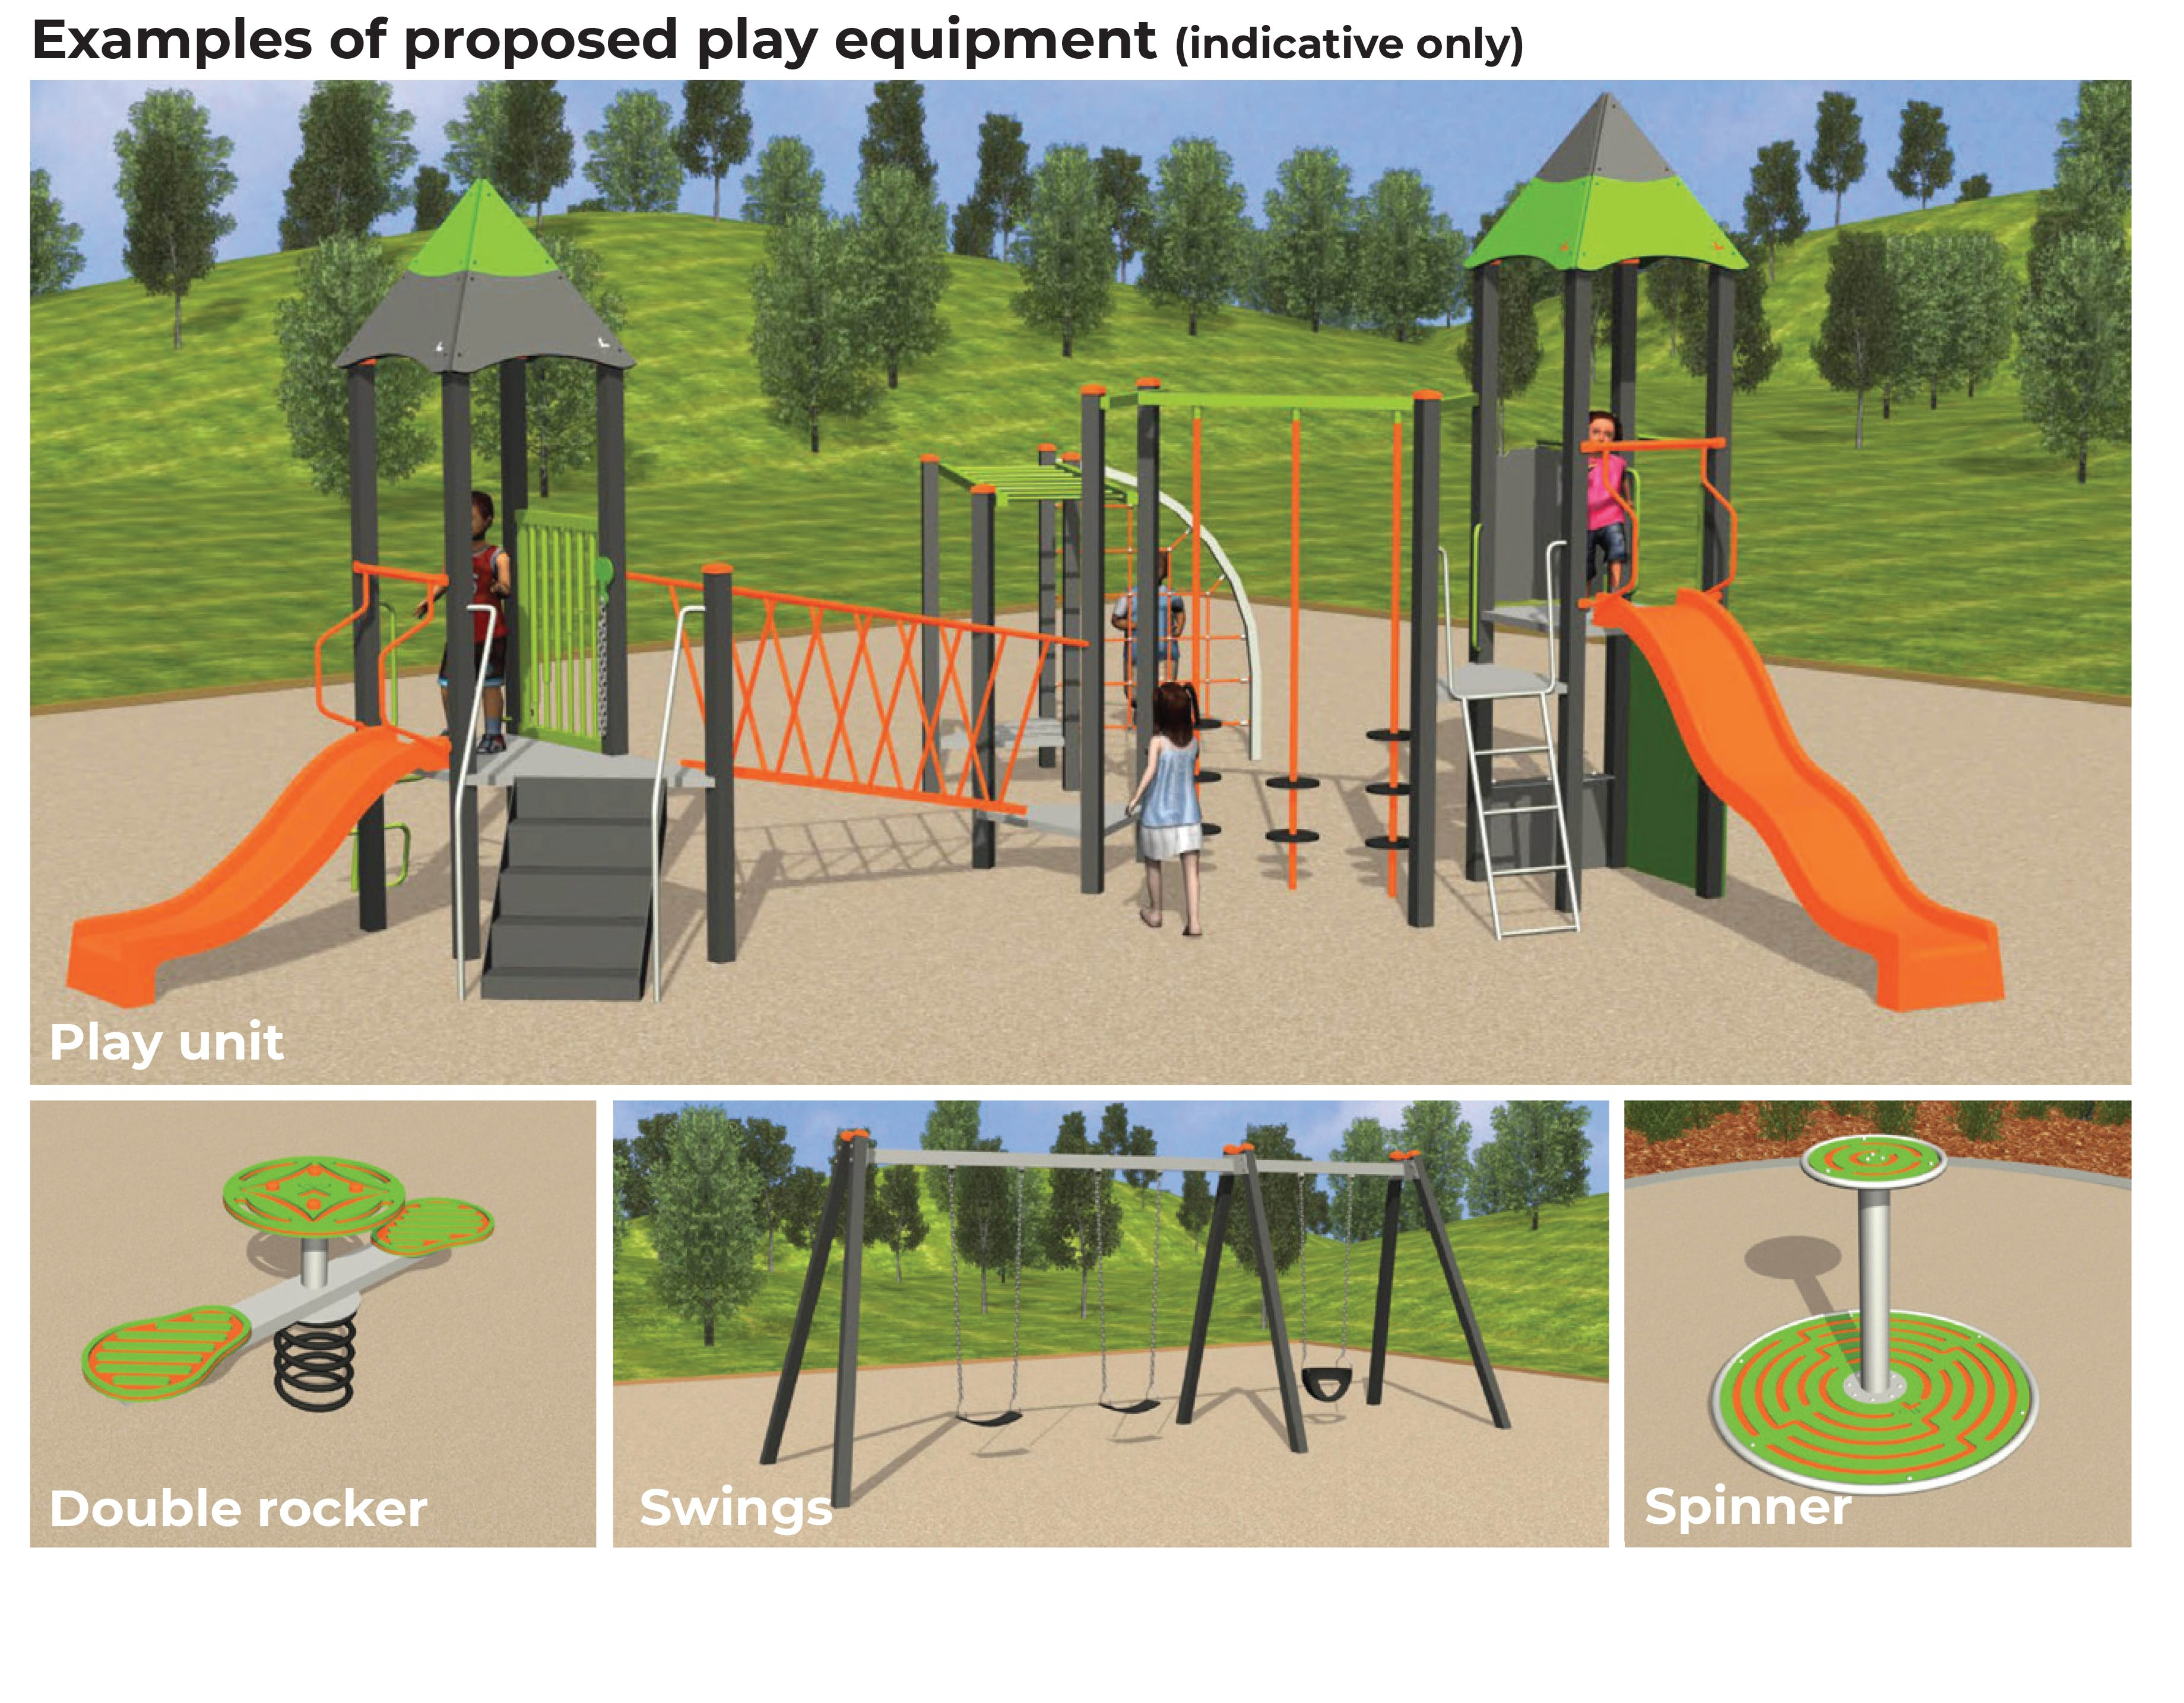 Rudstone Bend Reserve - Proposed Play Equipment